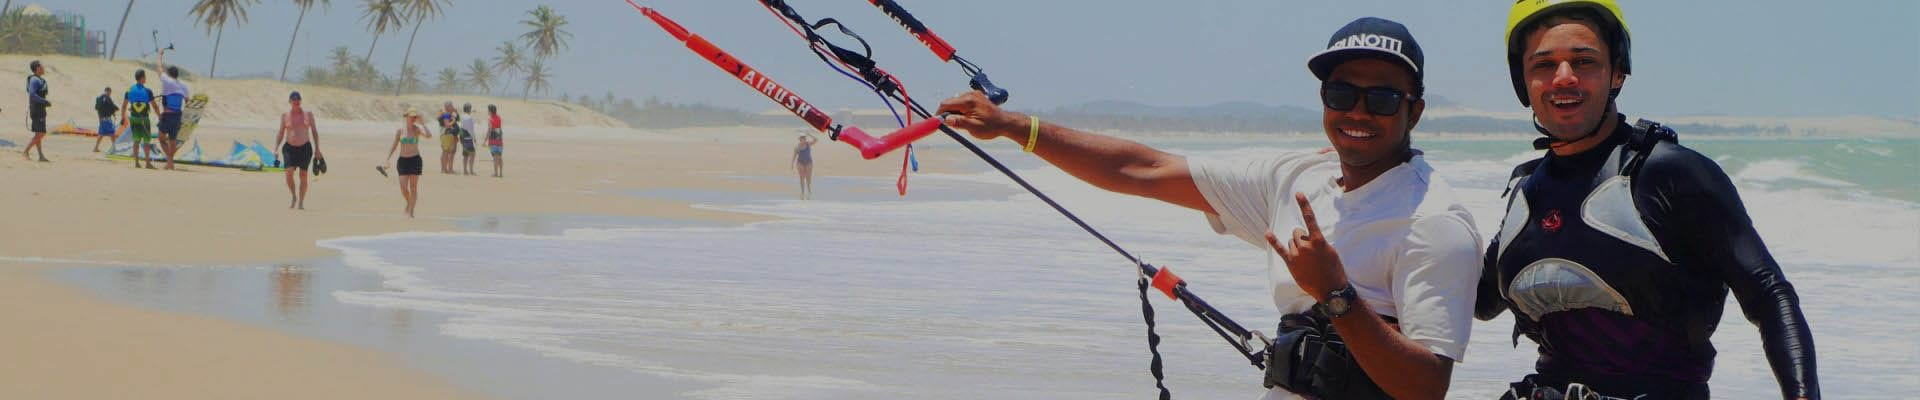 Courses | Kiteschool Windtown